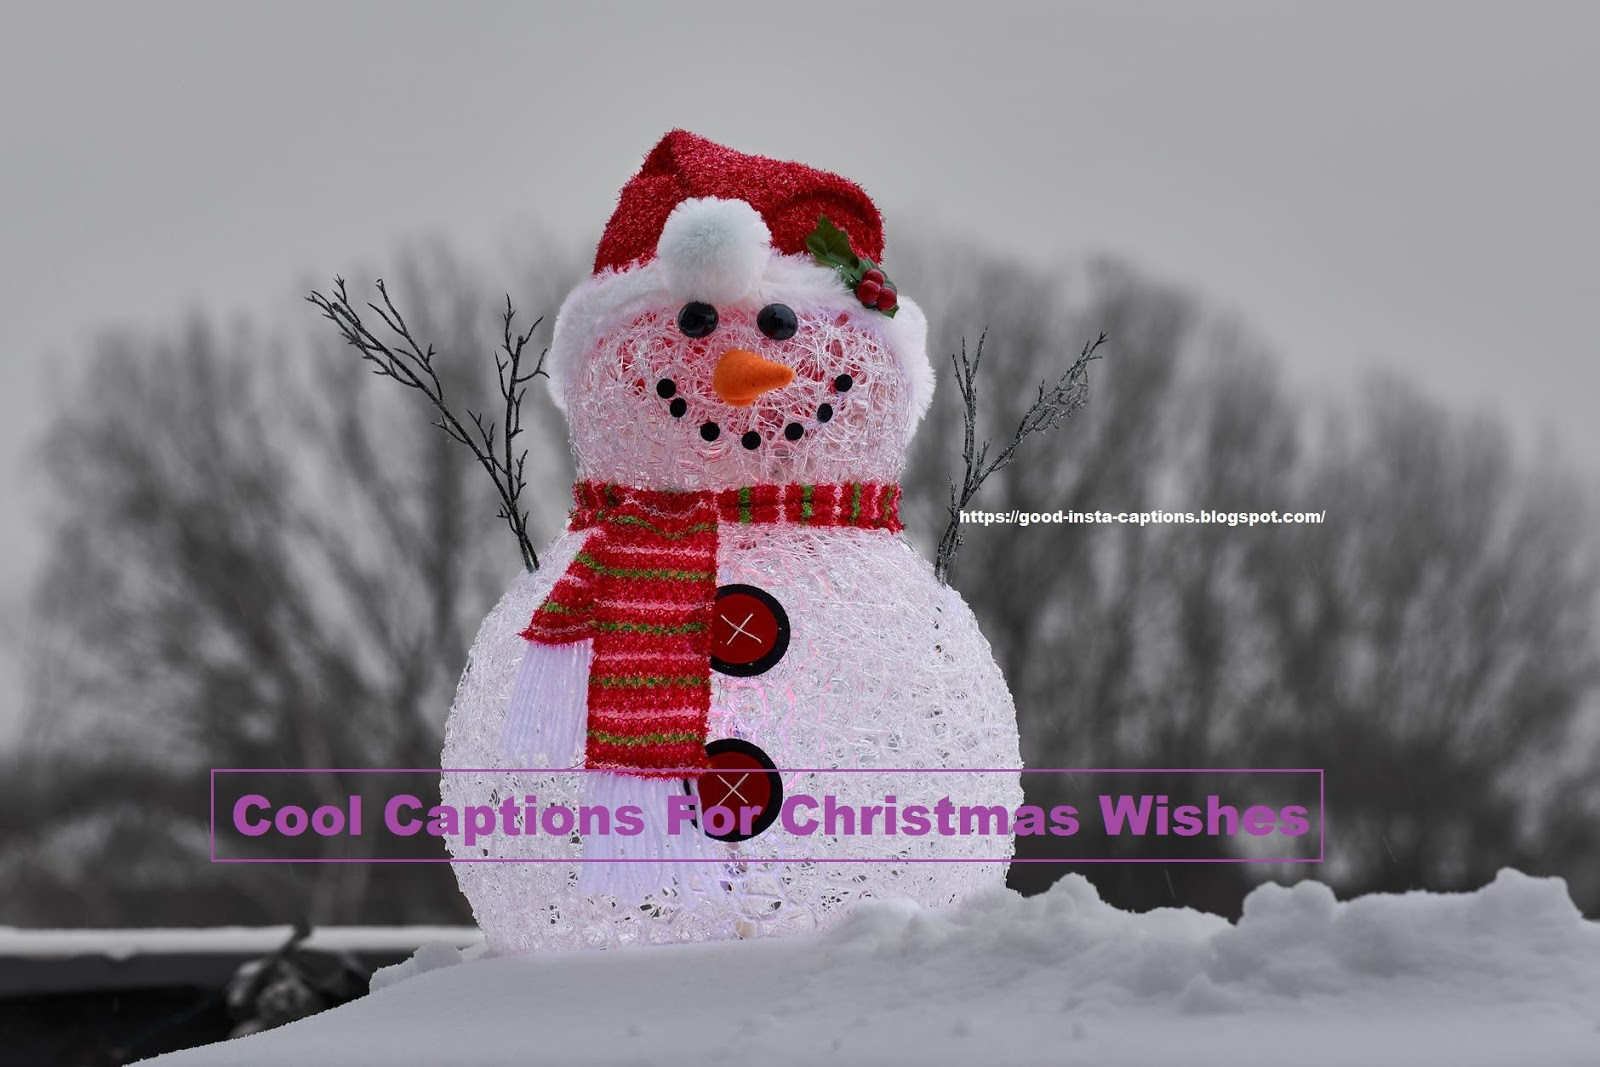 Cool Captions For Christmas Wishes